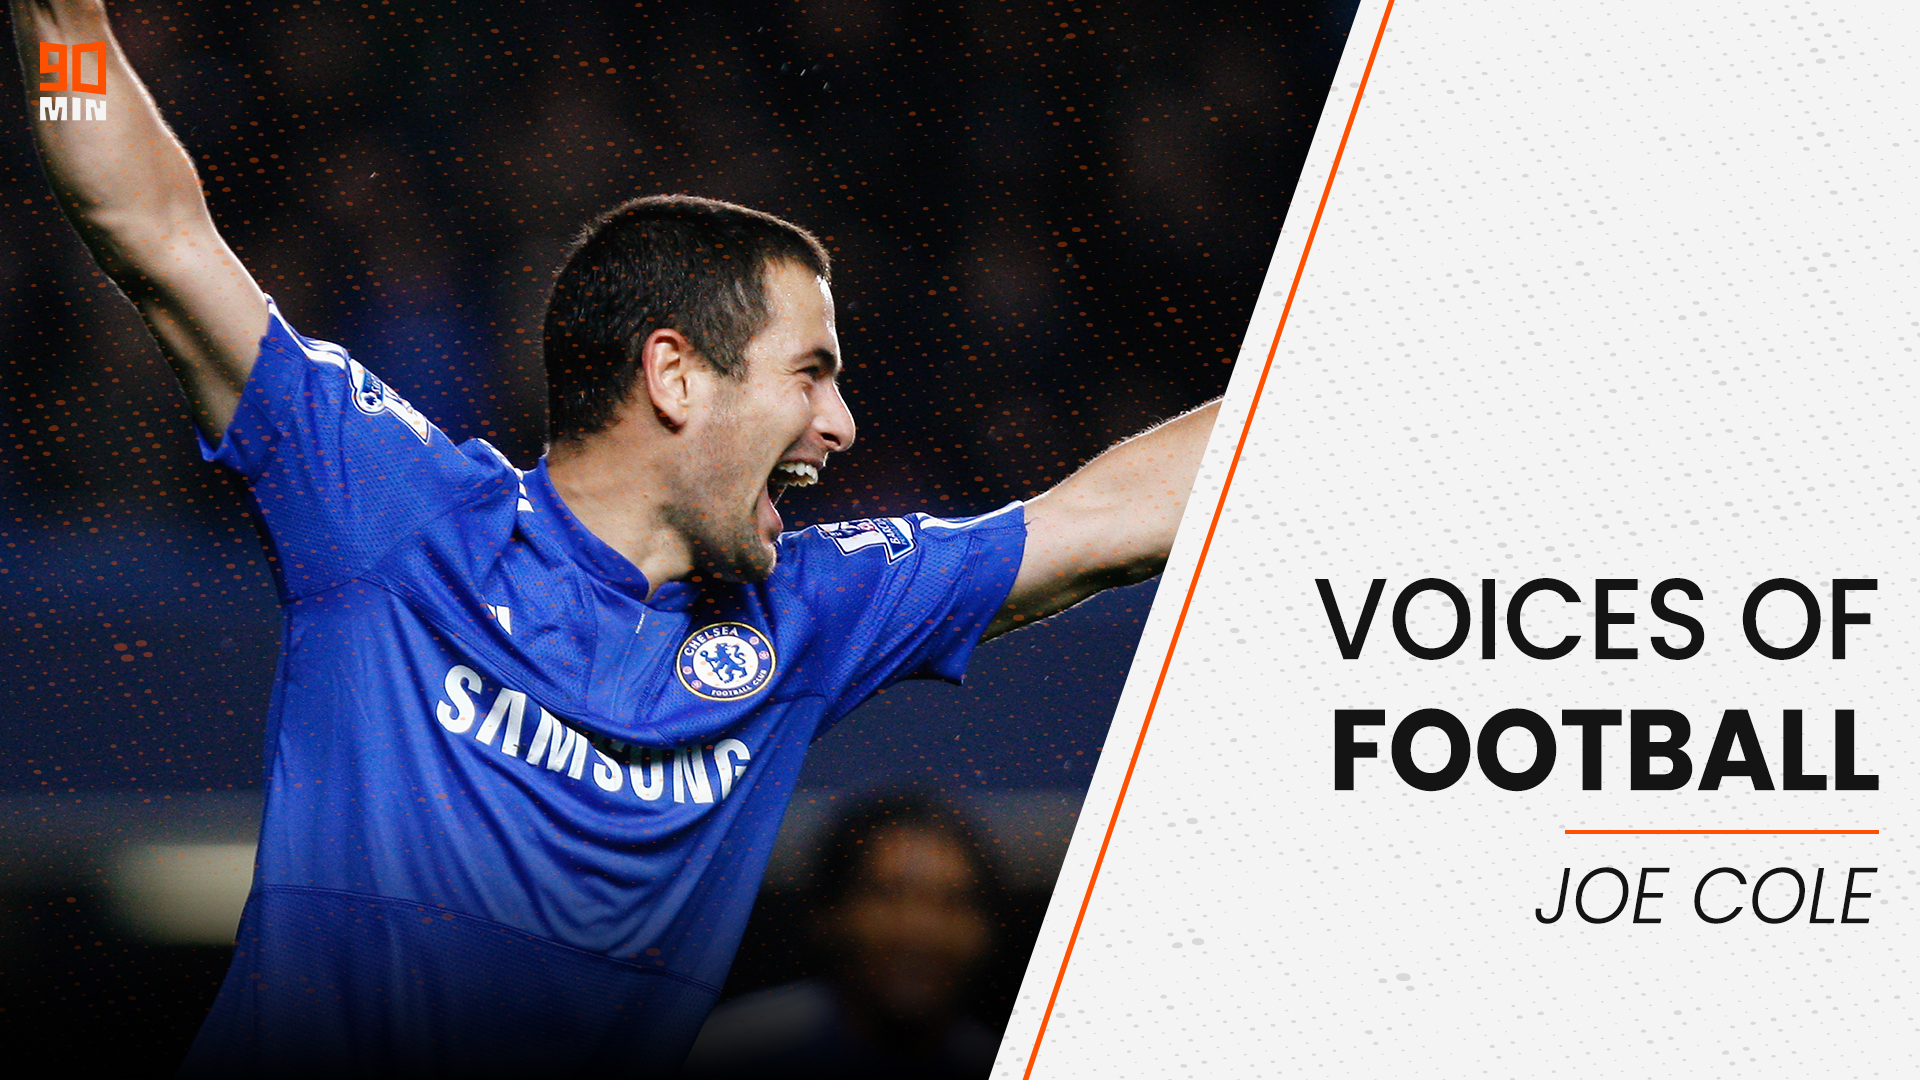 Joe Cole on Frank Lampard's First Year at Chelsea